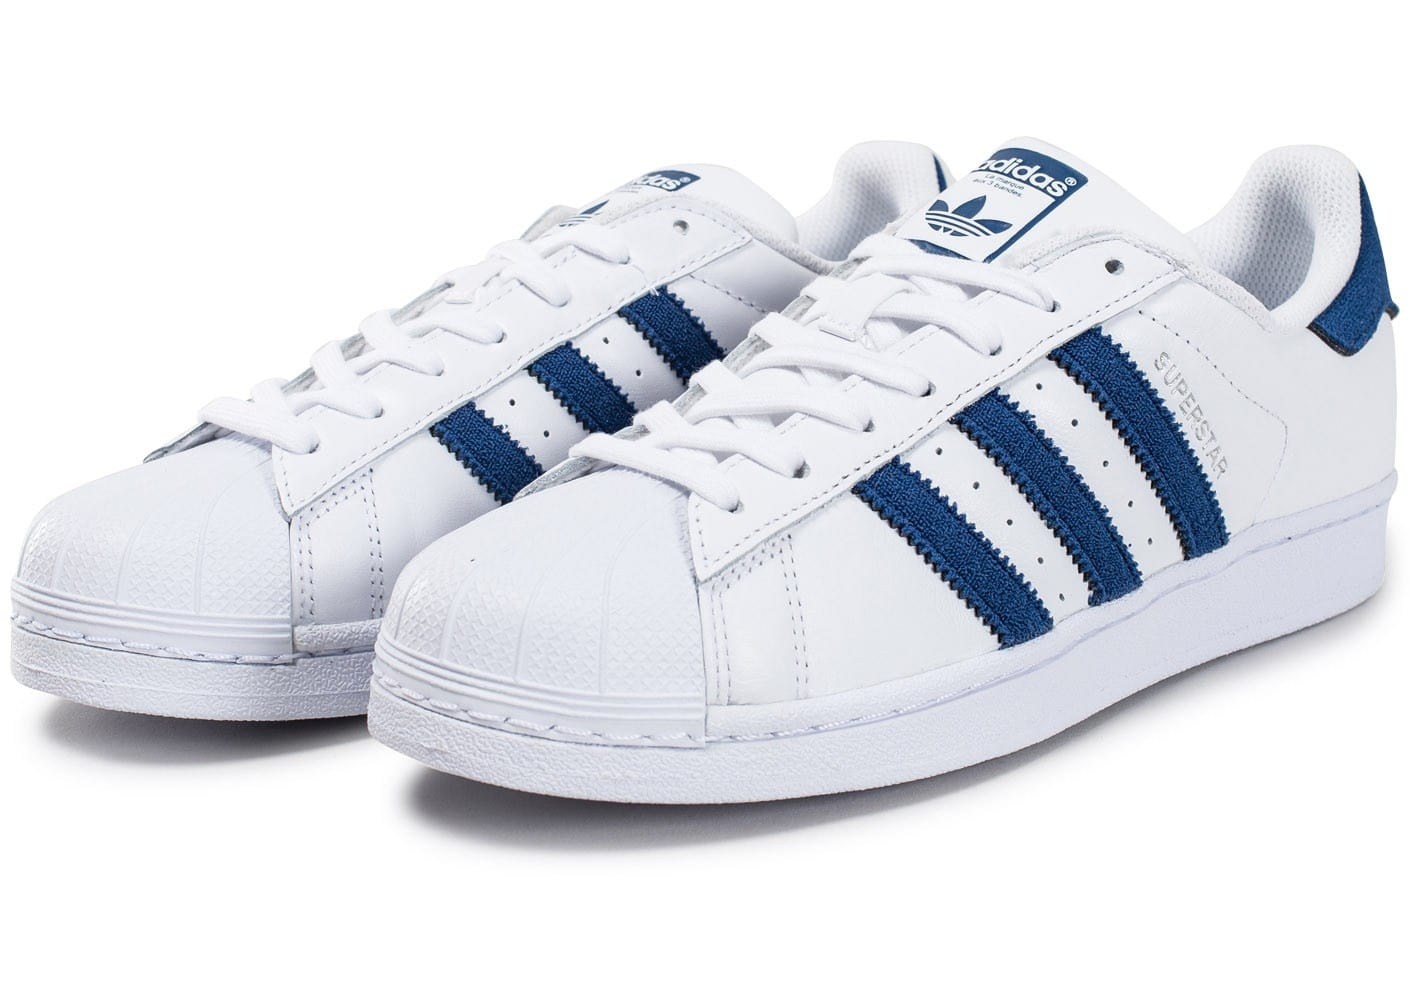 Buy adidas superstar blanche et bleu - 60% OFF